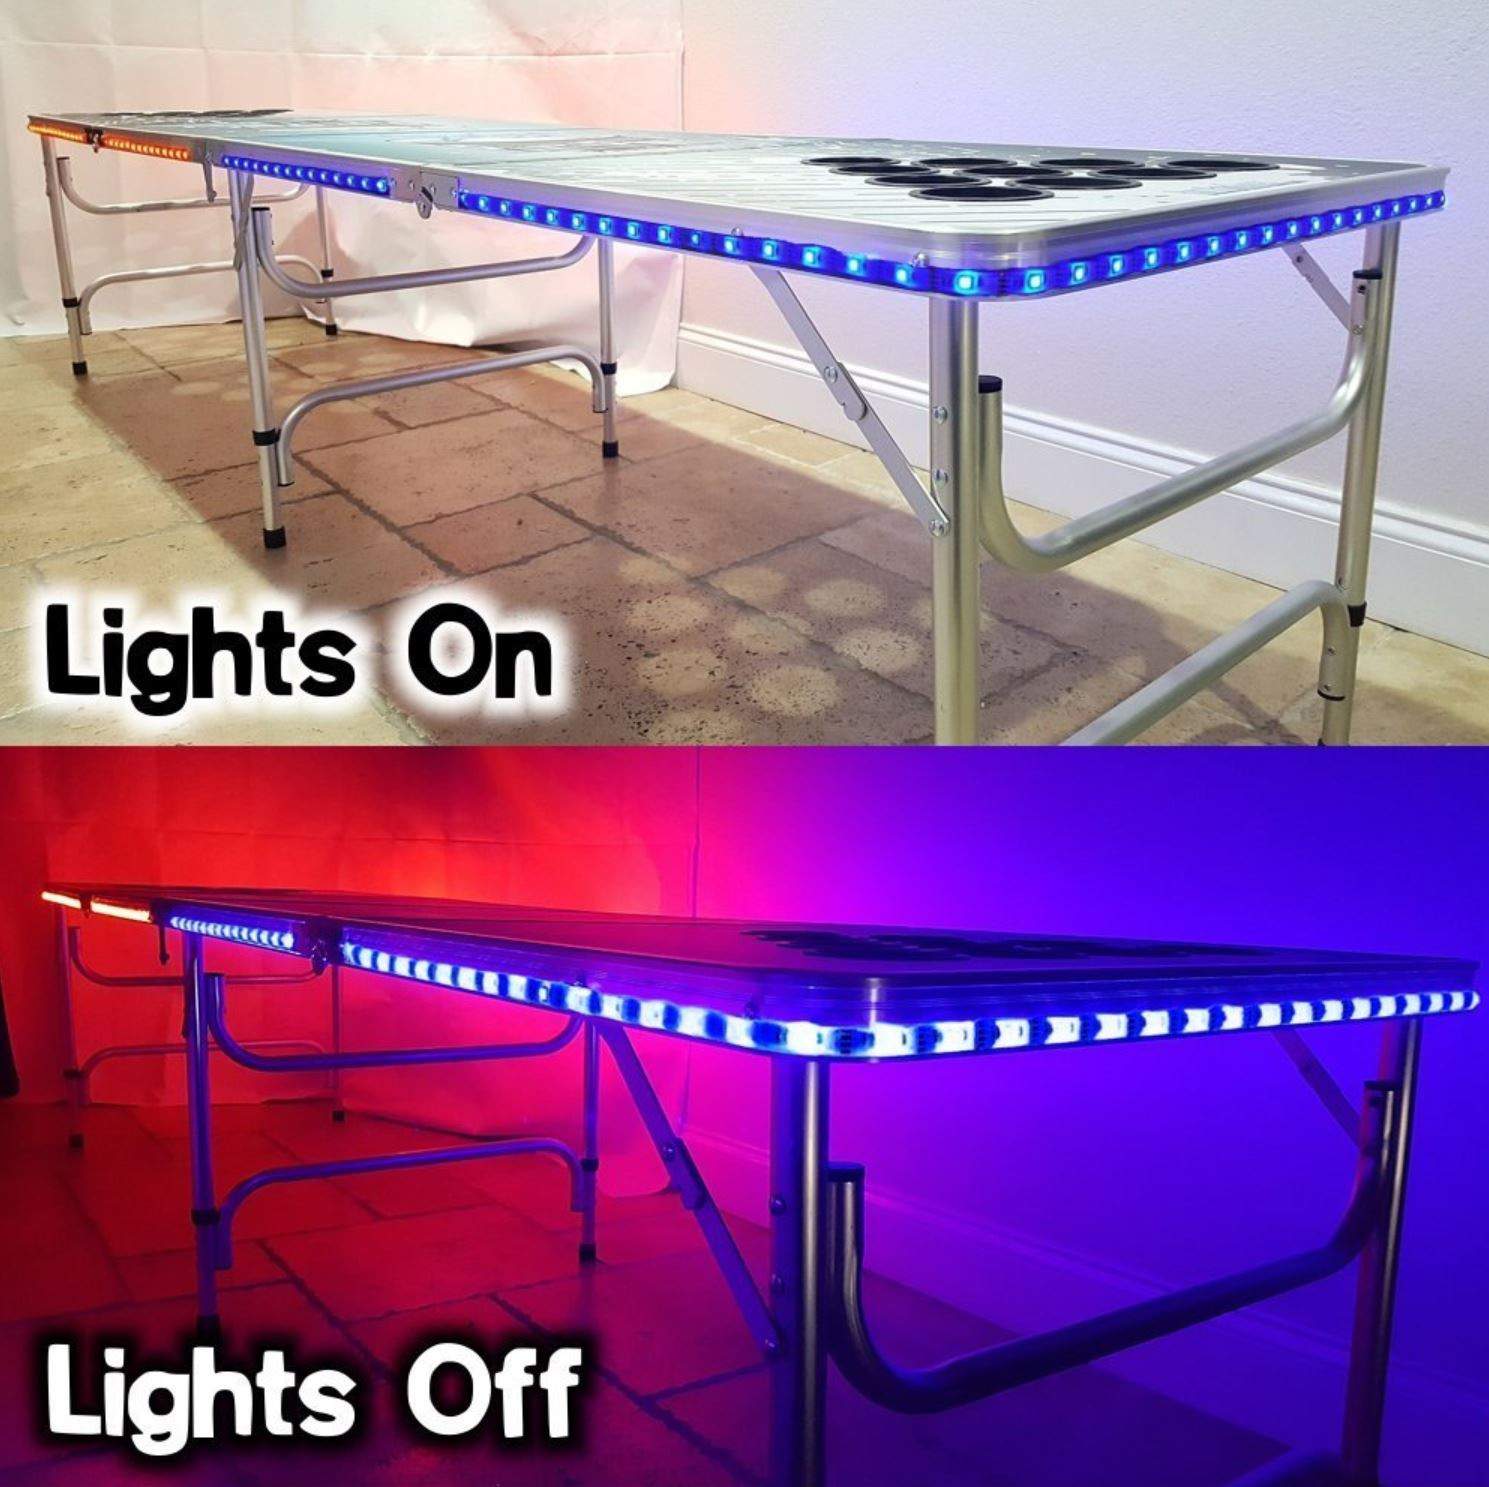 LED - Dry Eras Beer Pong Table - Party Rentals in South Florida - Fort Lauderdale, FL 786-423-8759